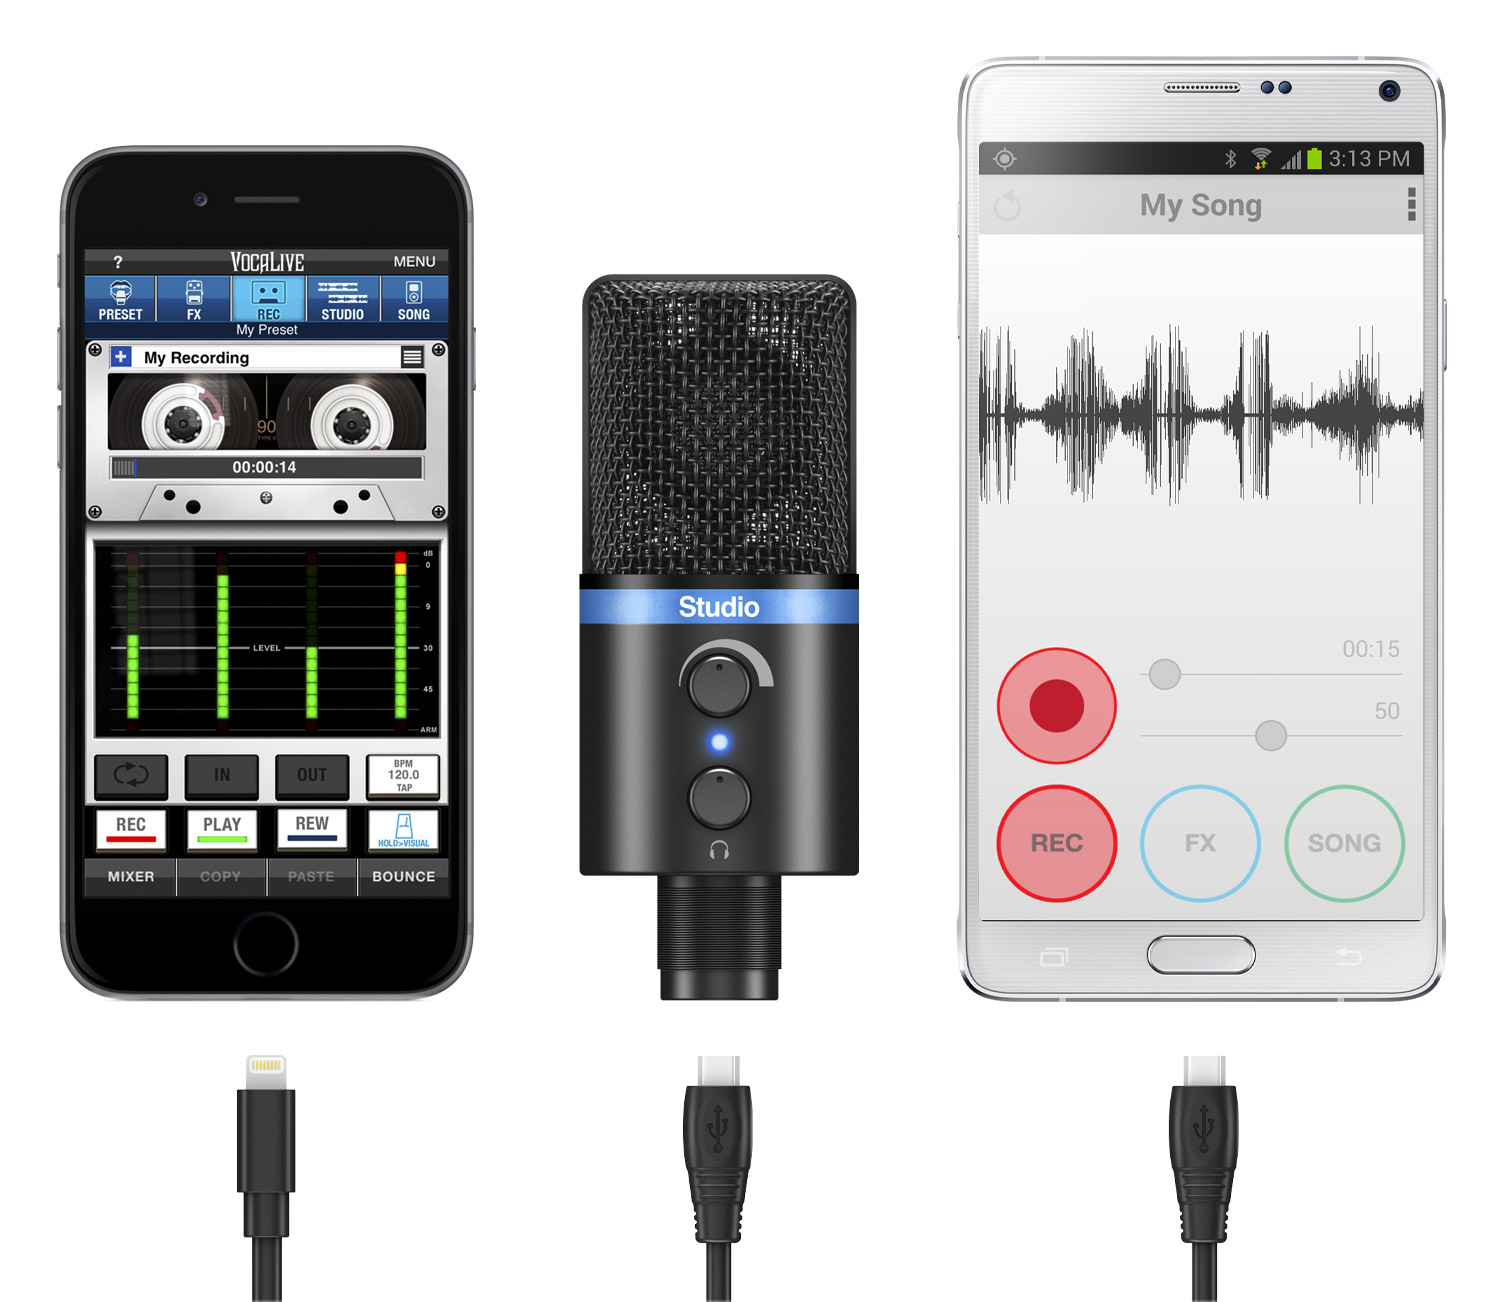 Usb Microphone In Android : review can the irig mic studio capture professional quality audio ~ Hamham.info Haus und Dekorationen